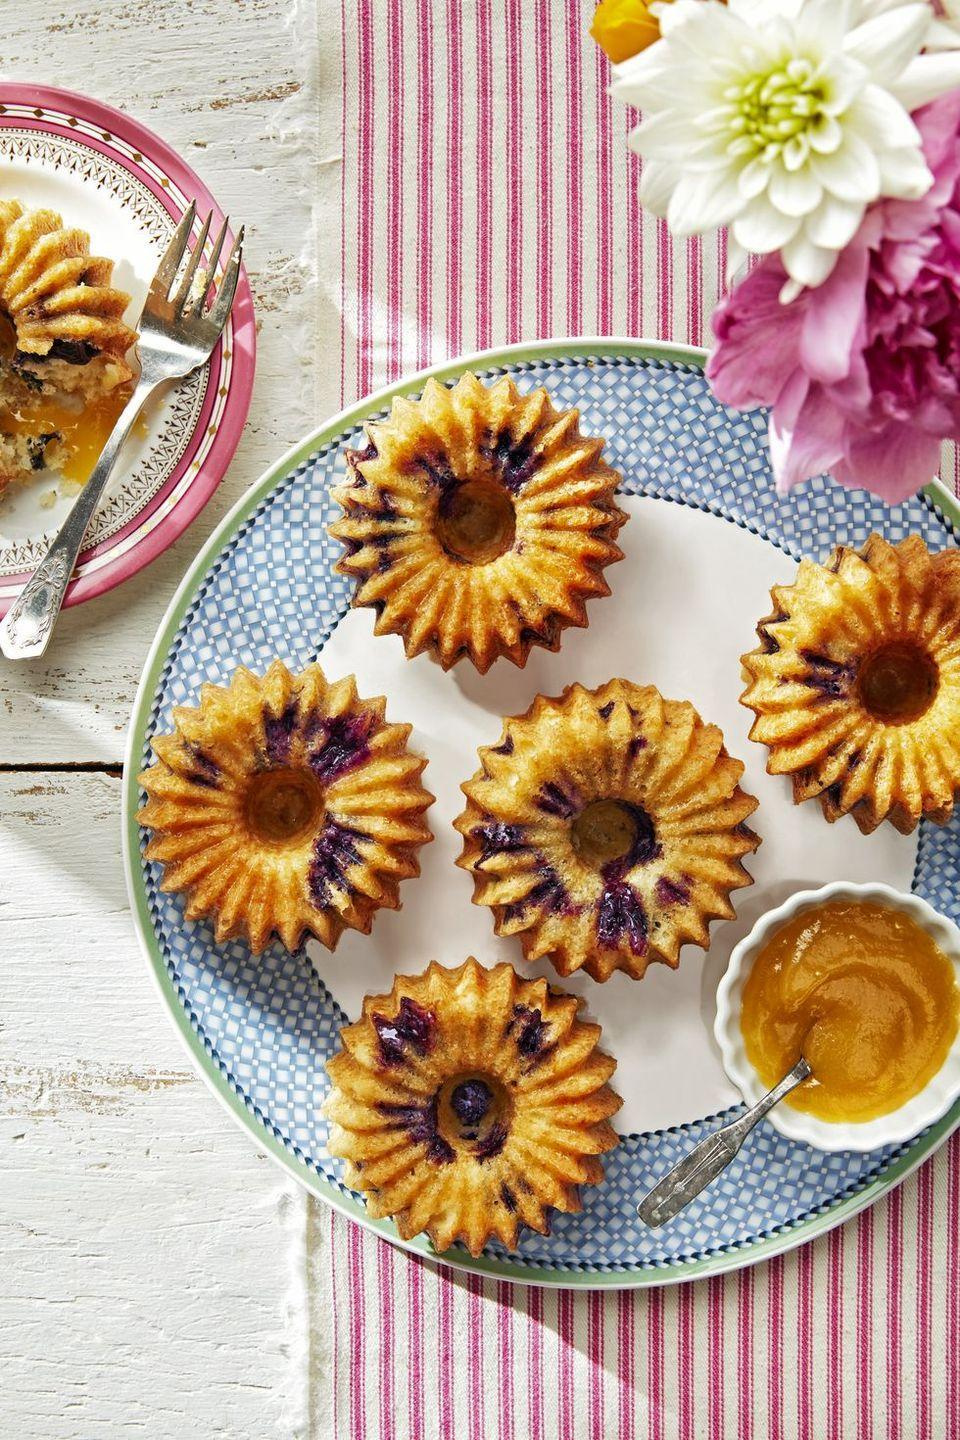 """<p>You can make one giant bundt cake with this recipe. But the mini cakes are so cute, and just as easy.</p><p><strong><a href=""""https://www.countryliving.com/food-drinks/a27245094/meyer-lemon-blueberry-cake-recipe/"""" rel=""""nofollow noopener"""" target=""""_blank"""" data-ylk=""""slk:Get the recipe"""" class=""""link rapid-noclick-resp"""">Get the recipe</a>.</strong></p><p><strong><a class=""""link rapid-noclick-resp"""" href=""""https://www.amazon.com/Wilton-2105-445-Excelle-6-Cavity-Fluted/dp/B0000DIX7S?tag=syn-yahoo-20&ascsubtag=%5Bartid%7C10050.g.32944821%5Bsrc%7Cyahoo-us"""" rel=""""nofollow noopener"""" target=""""_blank"""" data-ylk=""""slk:SHOP MINI BUNDT PANS"""">SHOP MINI BUNDT PANS</a><br></strong></p>"""